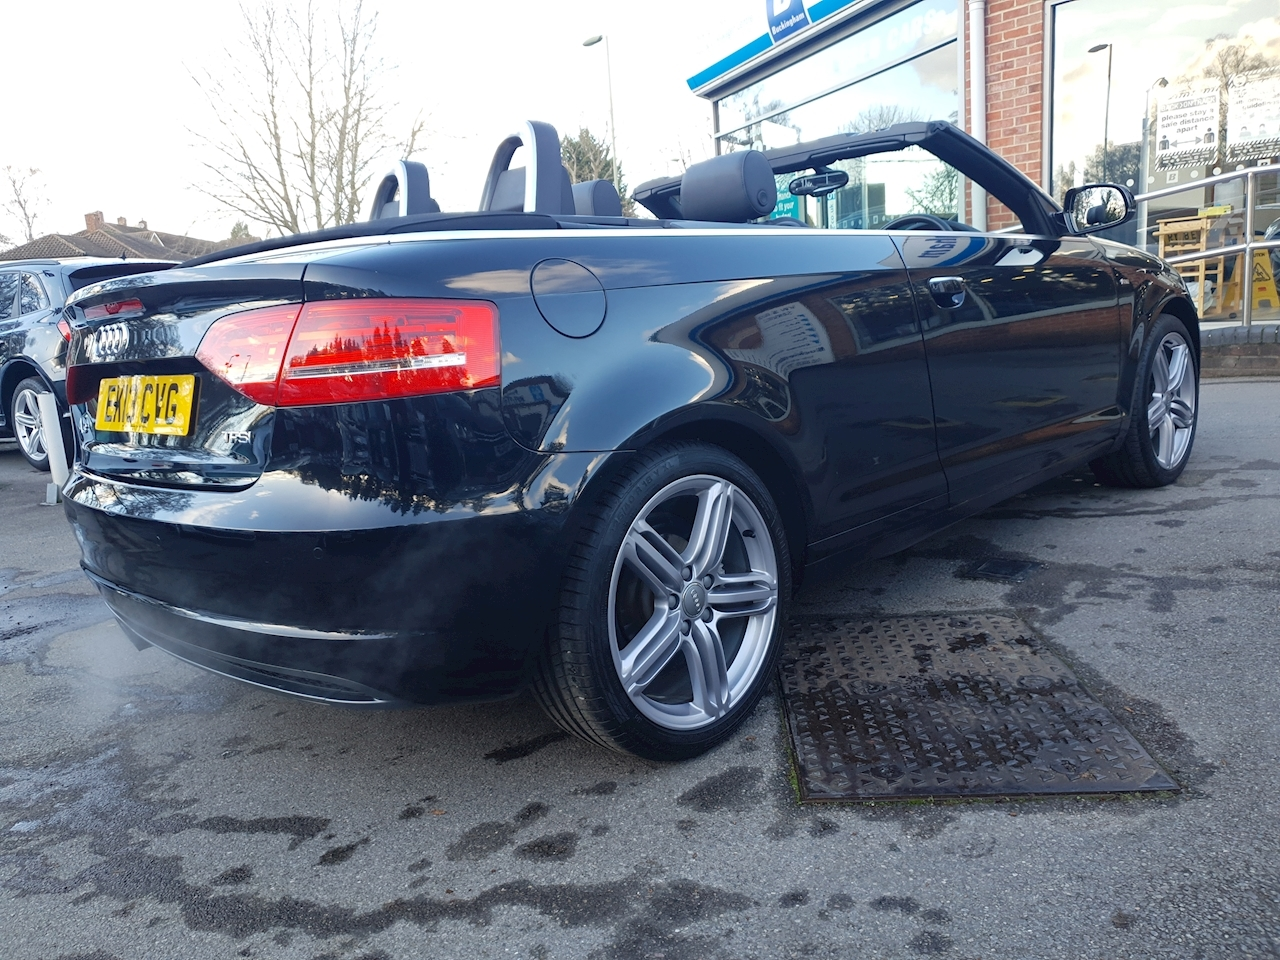 Audi 1.8 TFSI S line Final Edition Cabriolet 2dr Petrol S Tronic (154 g/km, 158 bhp)